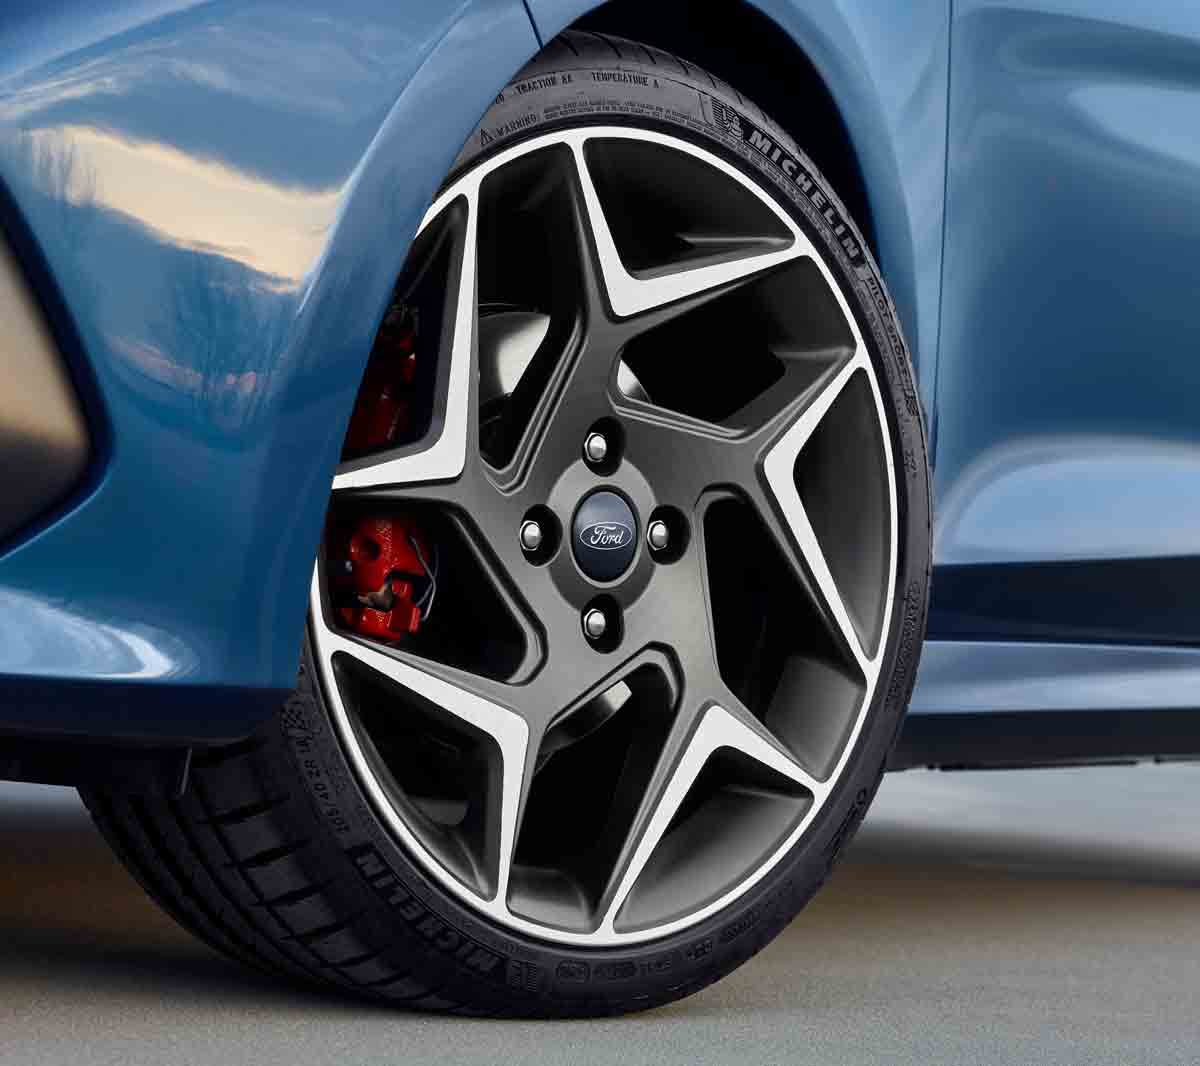 Blue Ford Fiesta ST front wheel detail